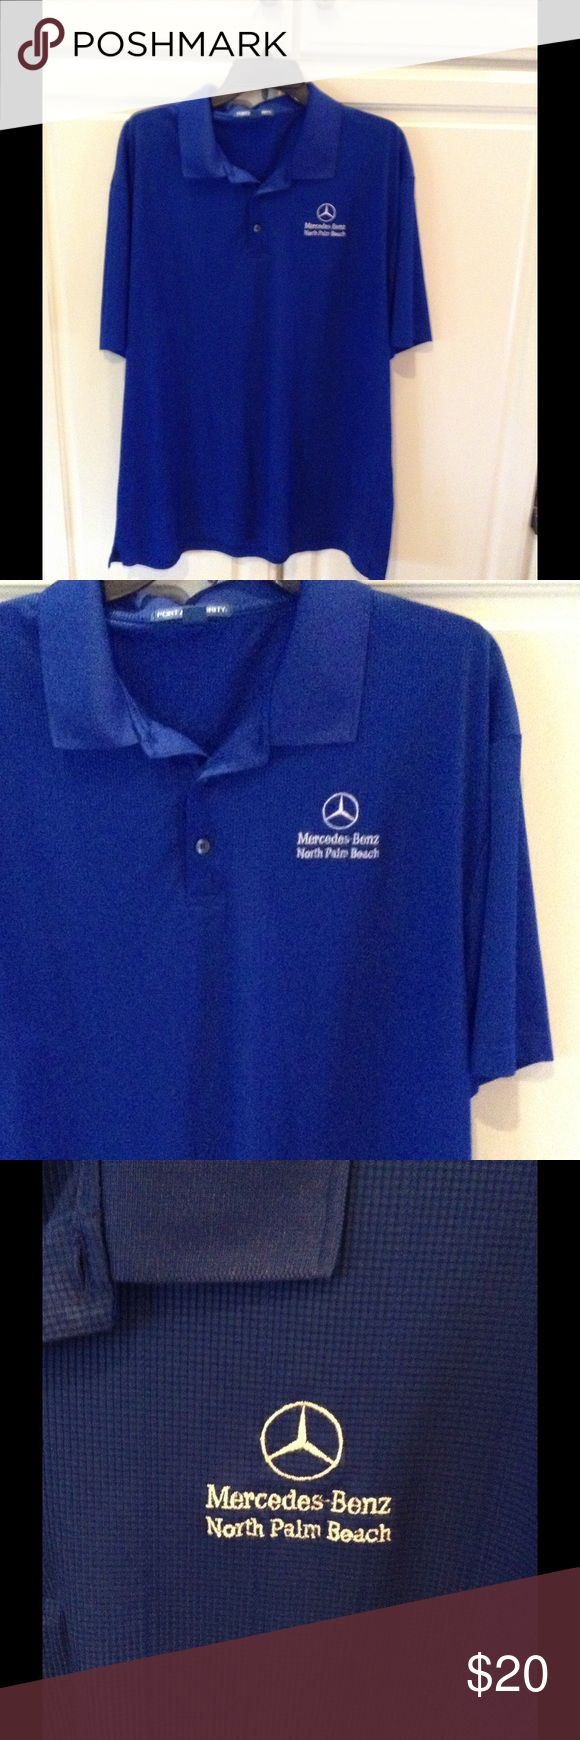 Cobalt Blue Mercedes Benz Shirt Cobalt blue polo style shirt that says Mercedes Benz, North Palm Beach with Mercedes emblem in white, collar is very pretty knit with three buttons down the front, pristine condition. Port Authority Shirts Polos